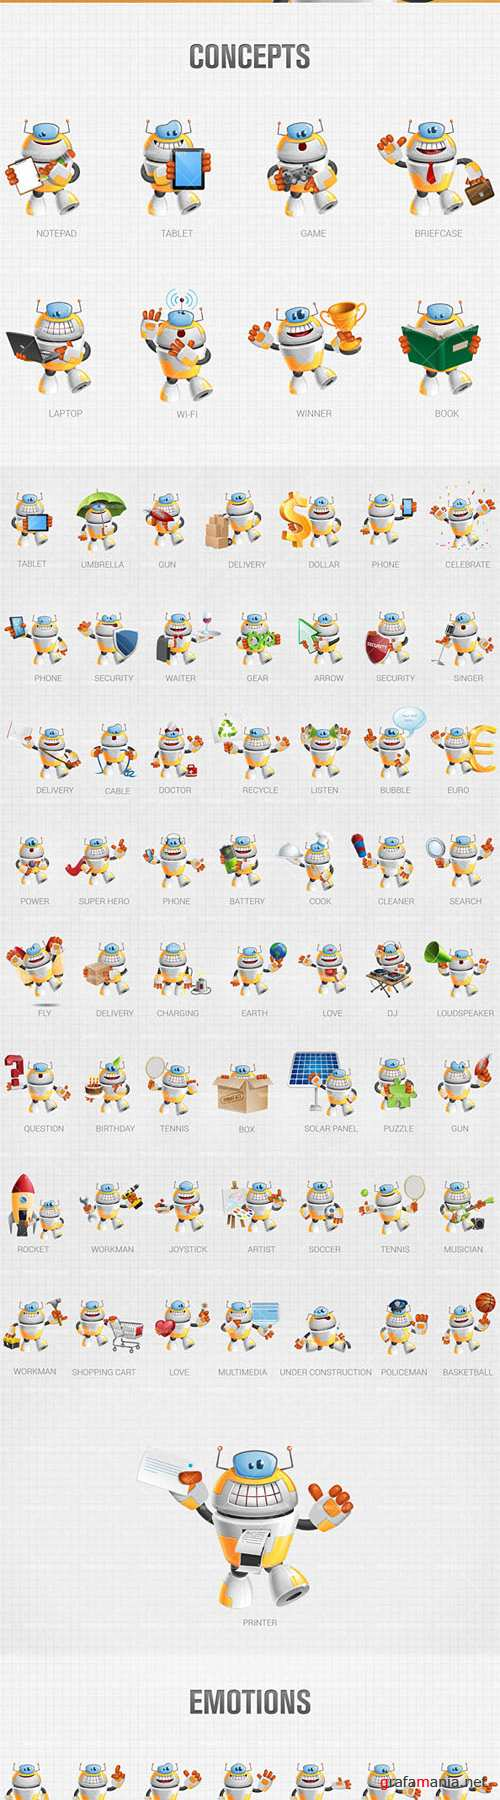 Funny Robot Cartoon Character - AI, EPS, PSD Vector Cliparts